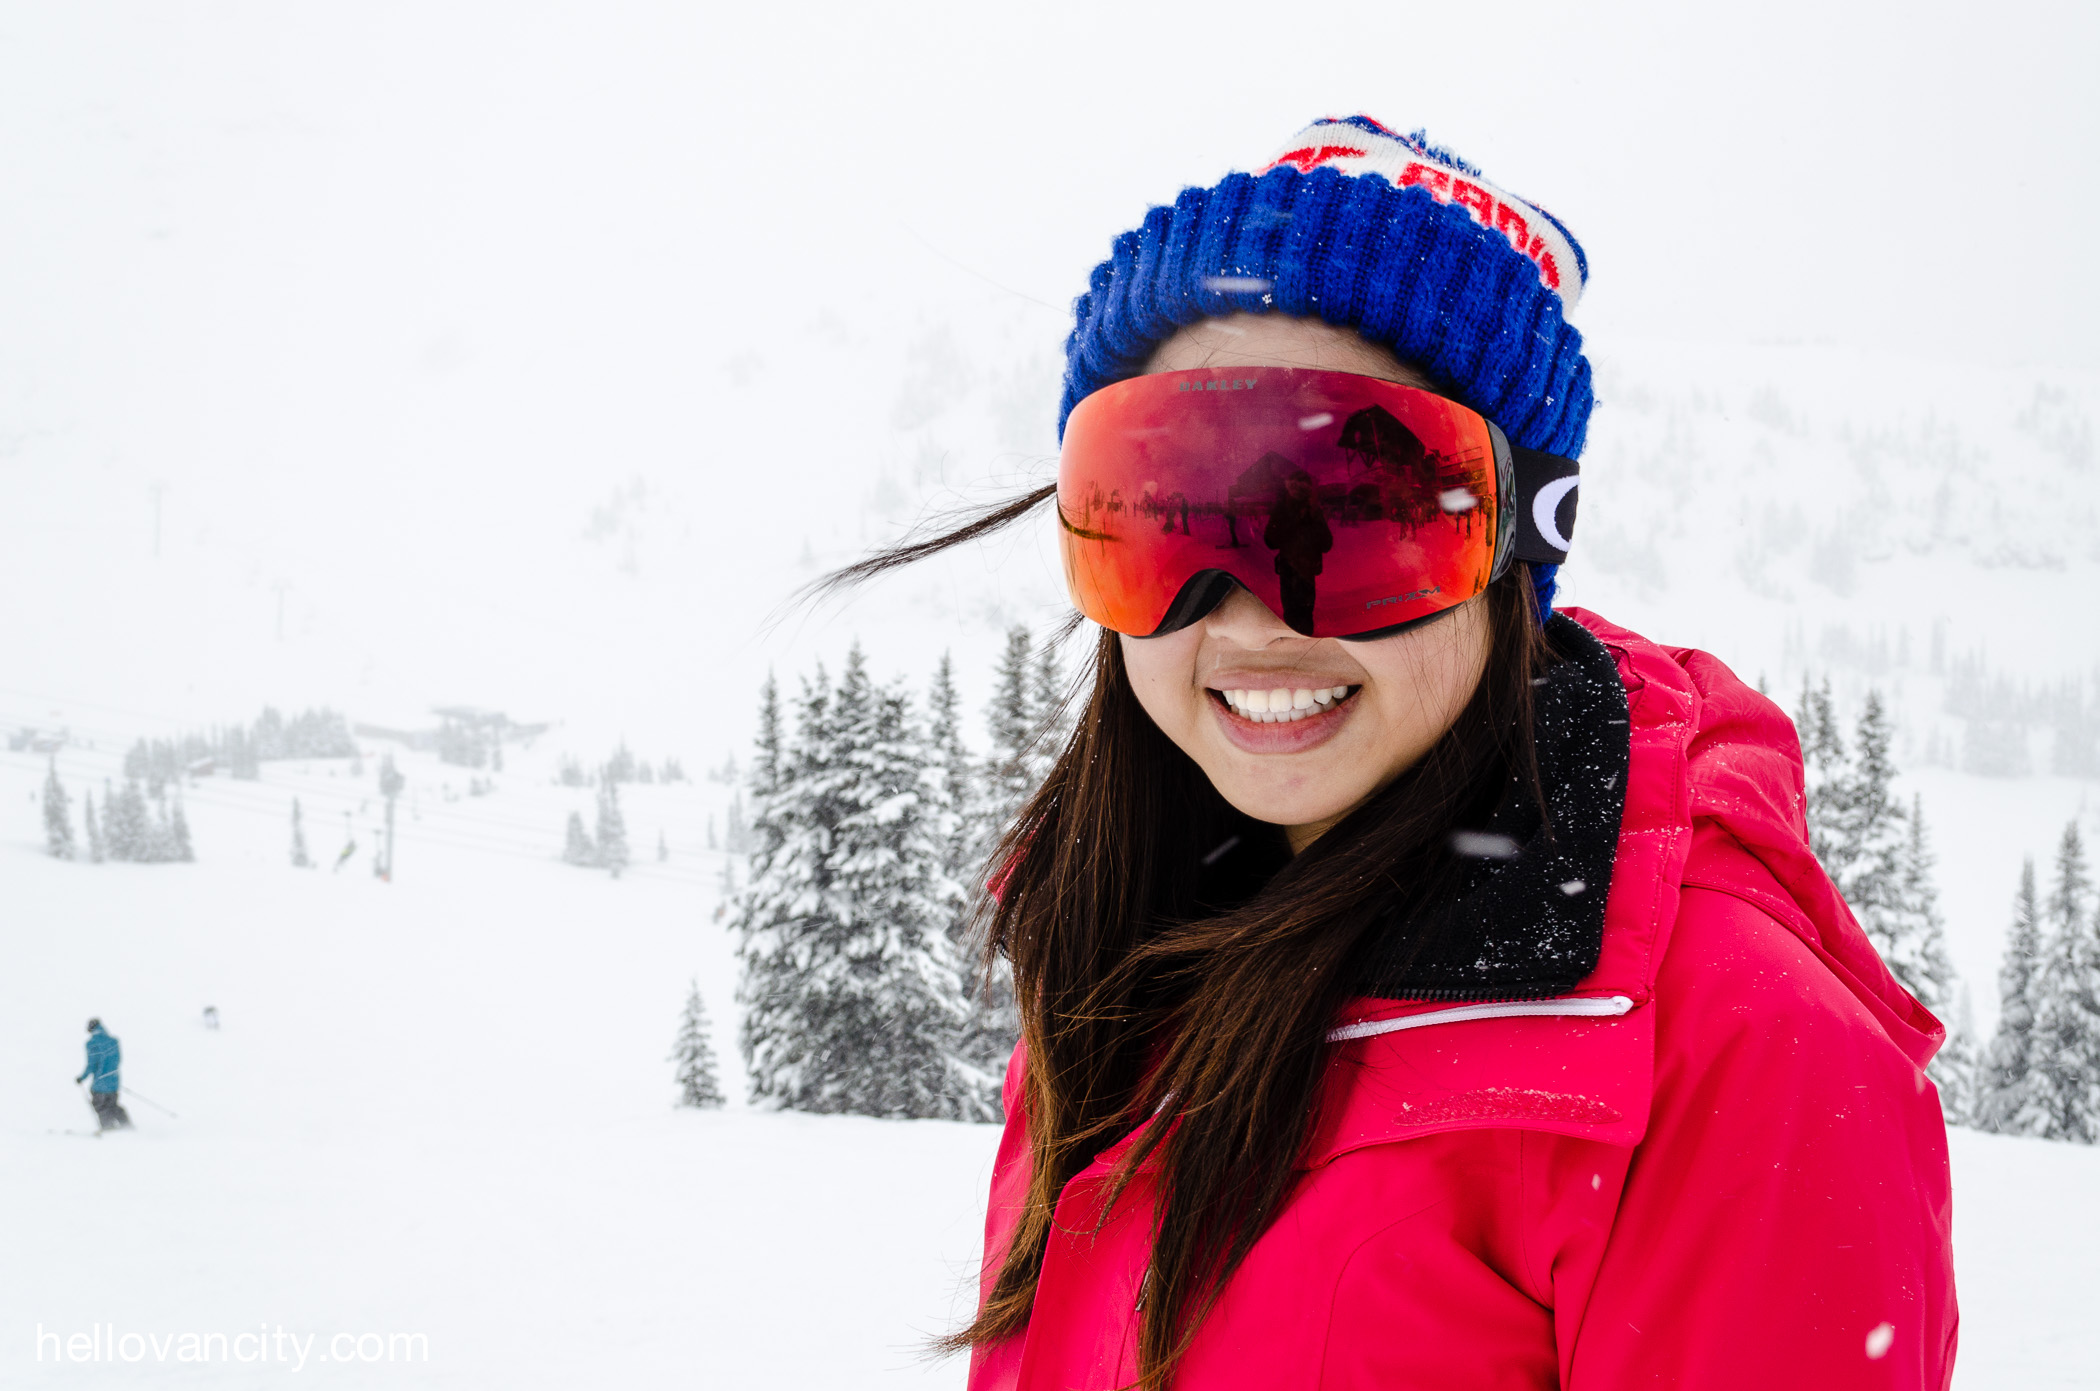 oakley snowboard  Review: Oakley Prizm Snow Goggles in Whistler - Hello Vancity